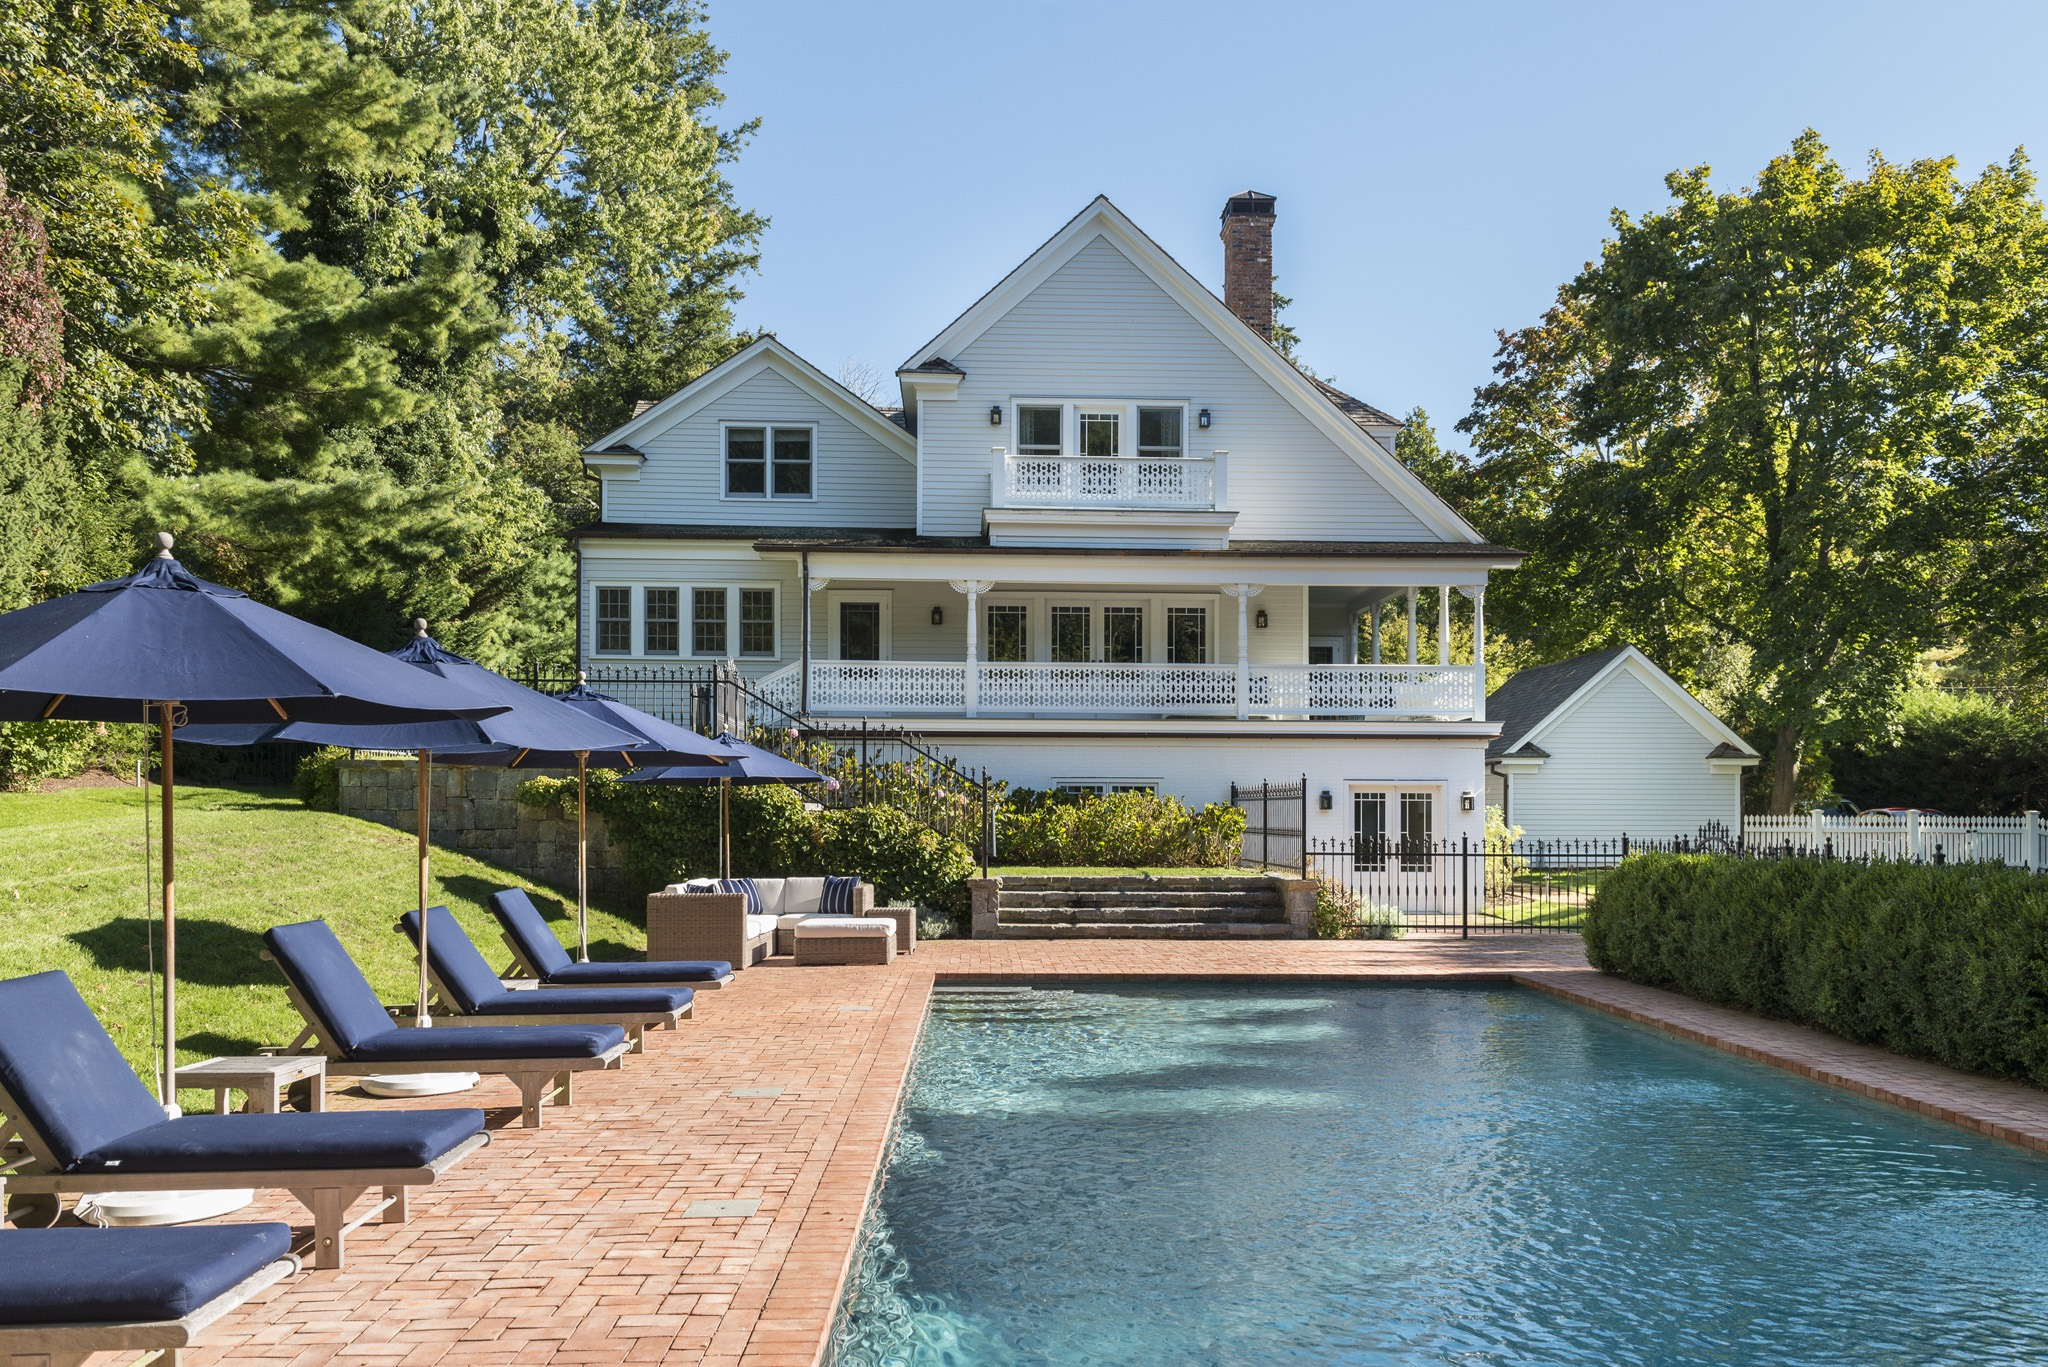 sagaponack middle eastern singles Address not disclosed, sagaponack, ny is a 7 bed, 6 bath, 7000 sq ft single-family home available for rent in sagaponack, new york.